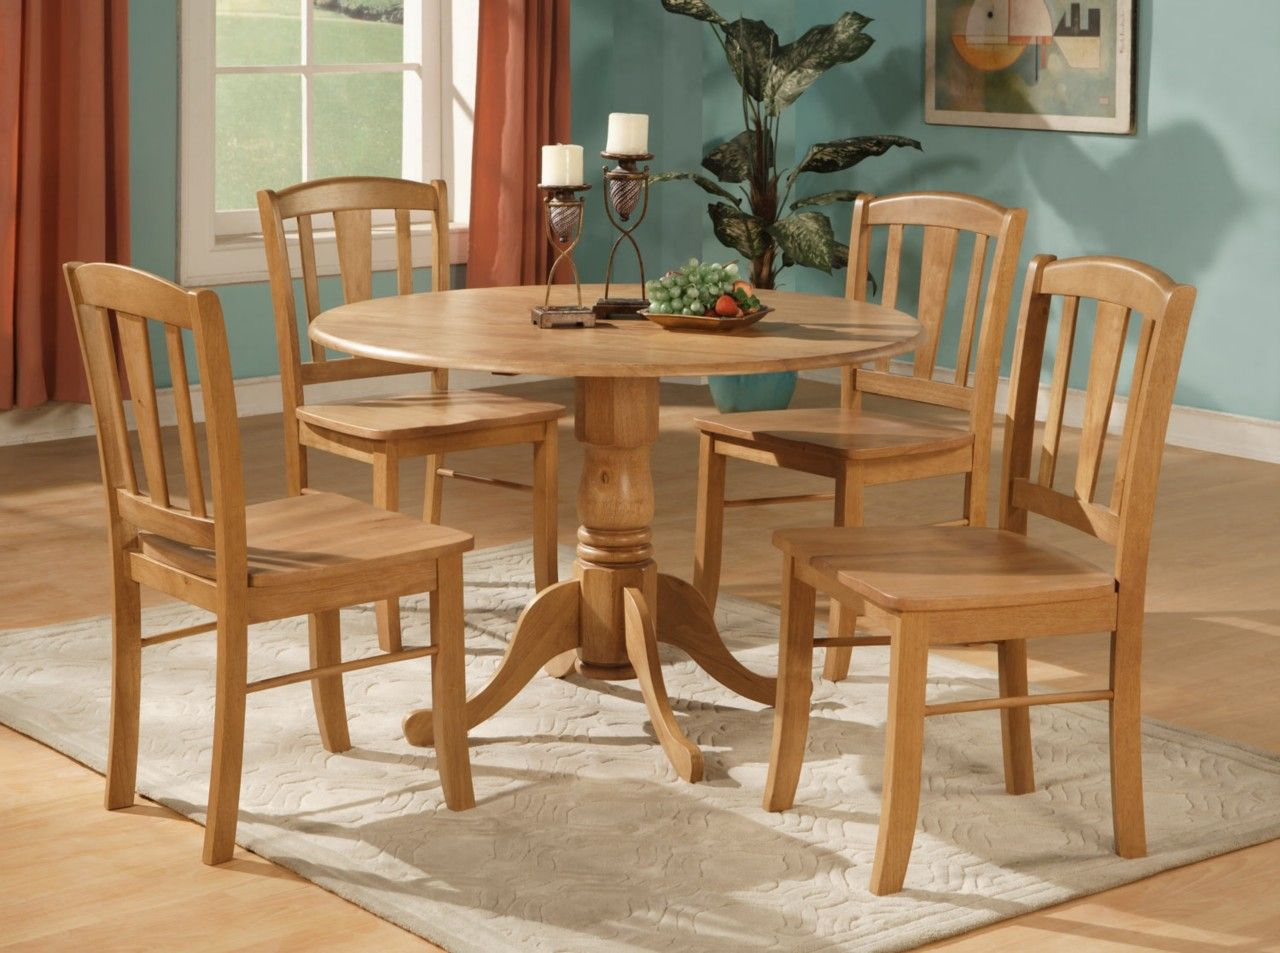 KitchenWood Kitchen Table And Chairs Sets Wood Dining Accent Candle